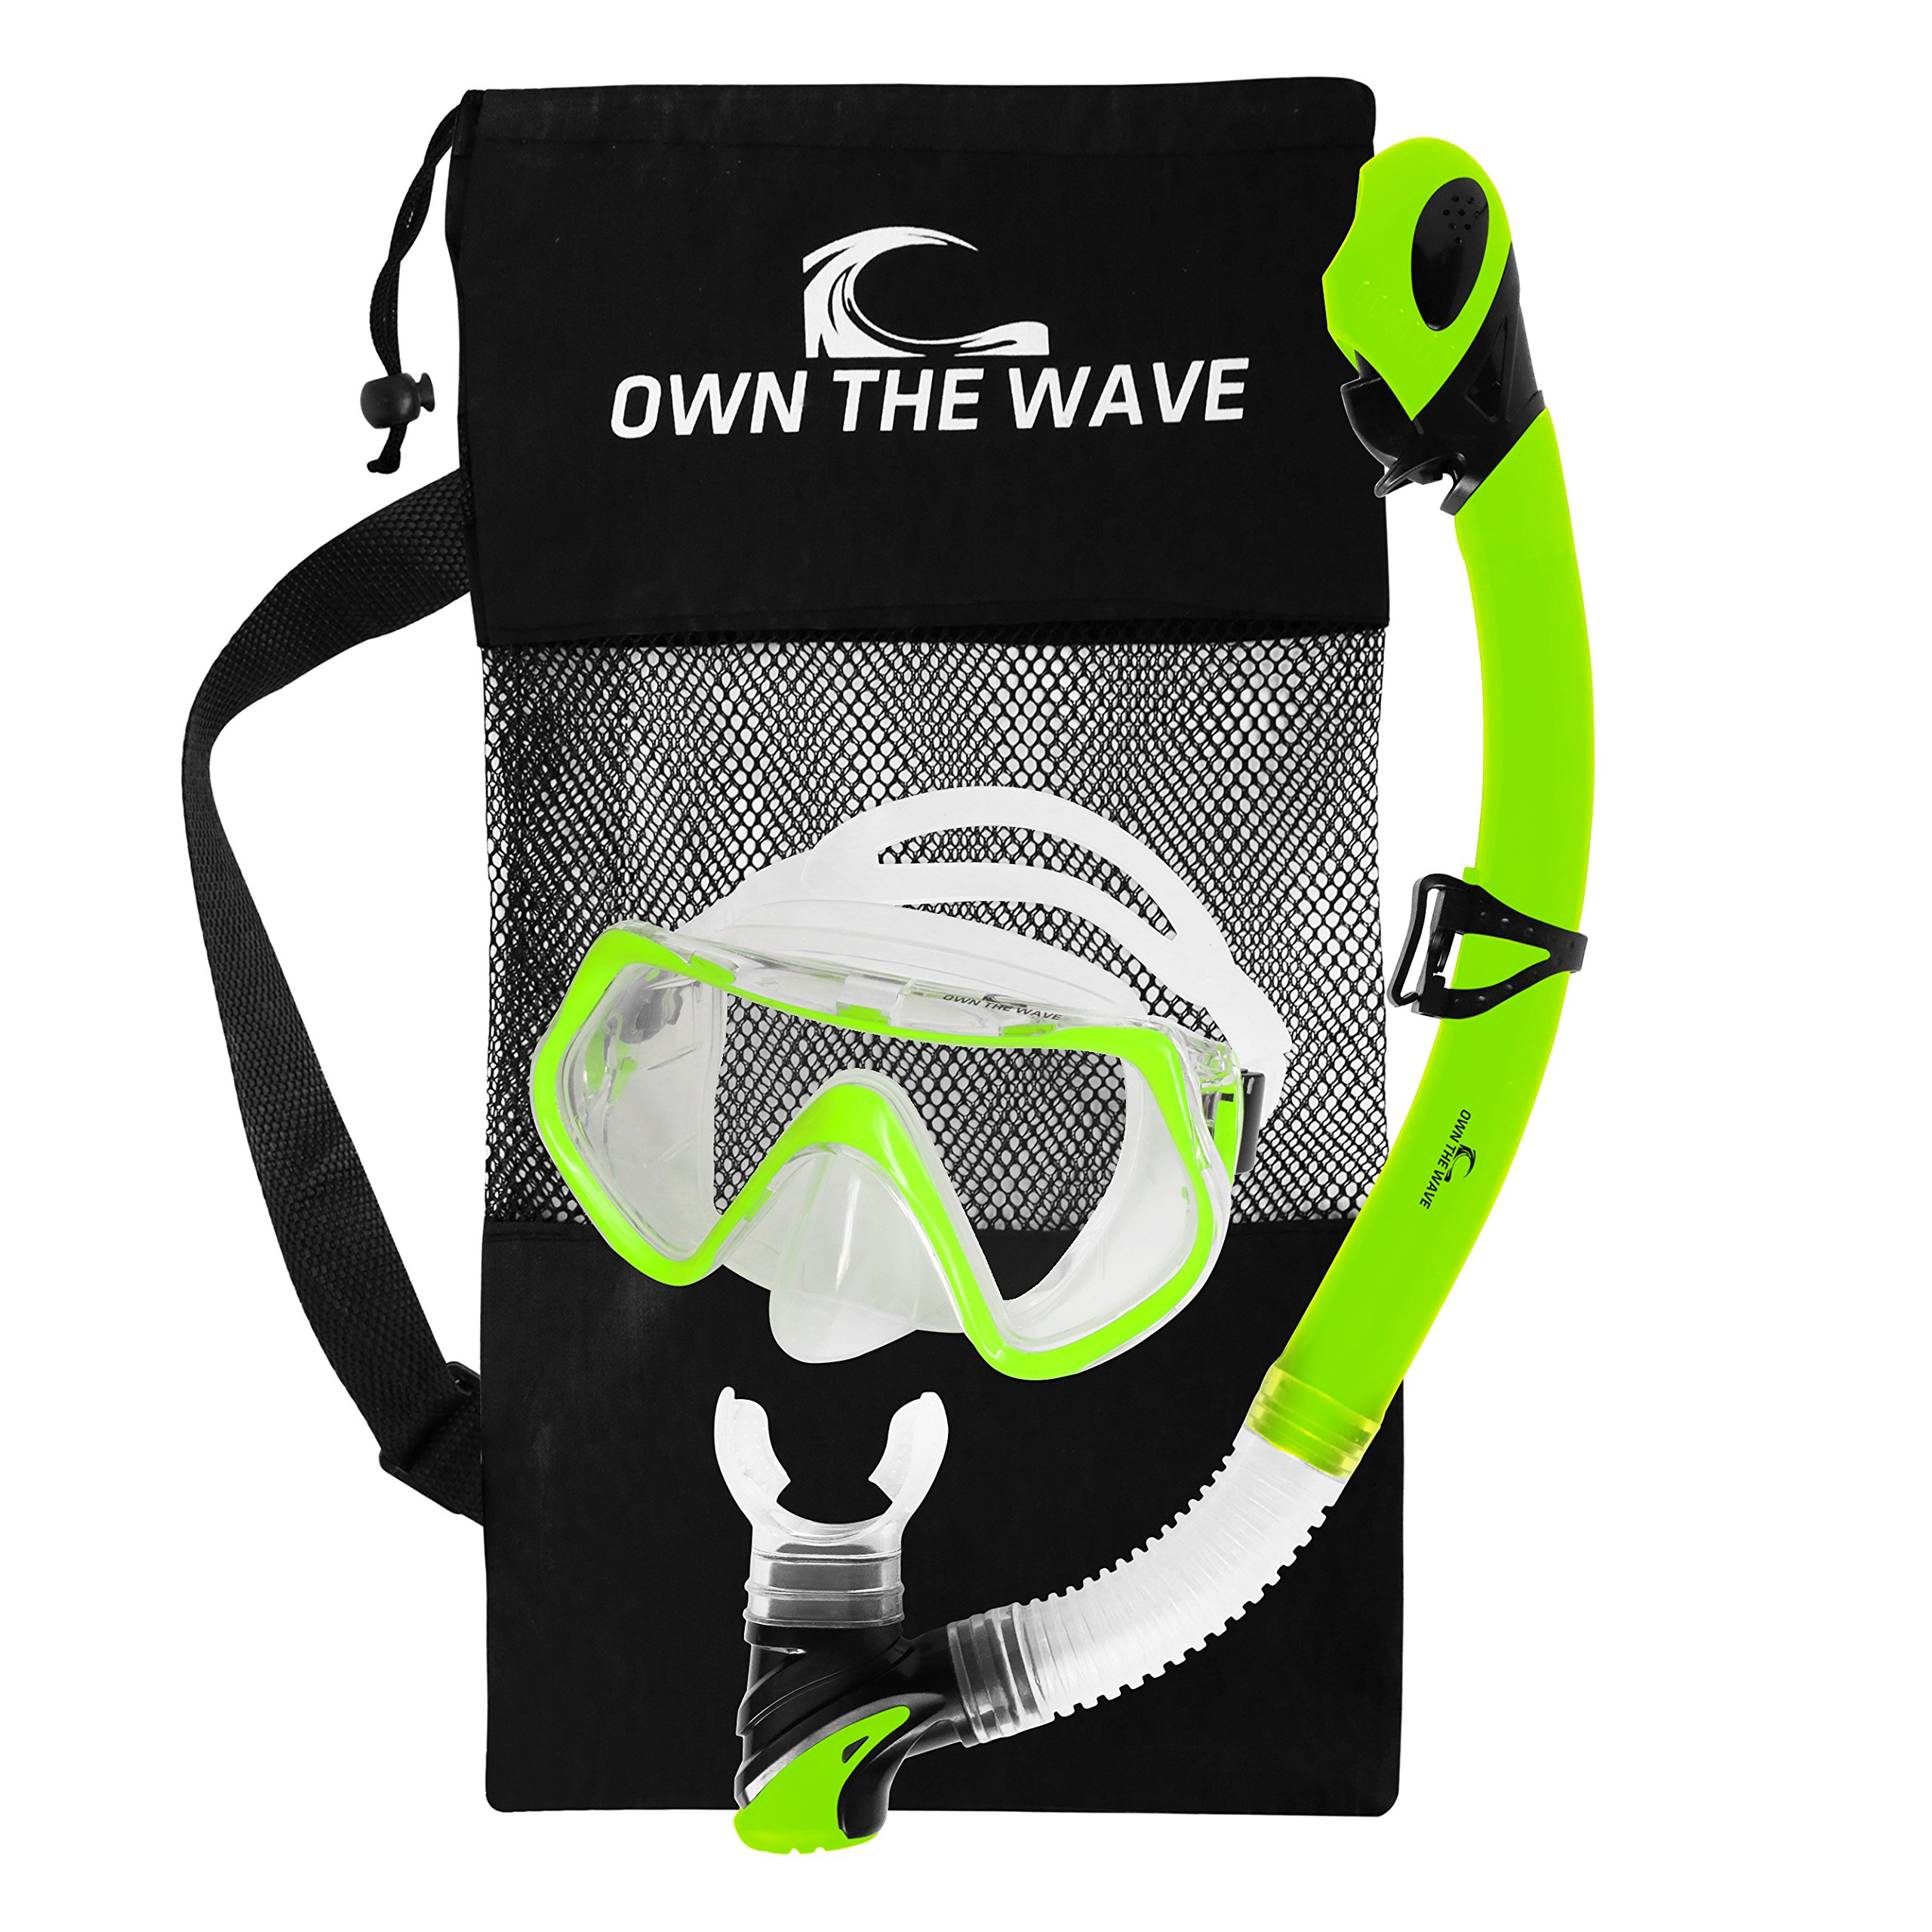 Own the Wave Snorkeling Gear - Impact Resistant Glass Anti Leak Silicone Skirt Adjustable Strap Diving Mask with Purge Valve Dry Top Snorkel Tube Swimming Mask Snorkel Tube Set w/Bag (Yellow) by Own the Wave